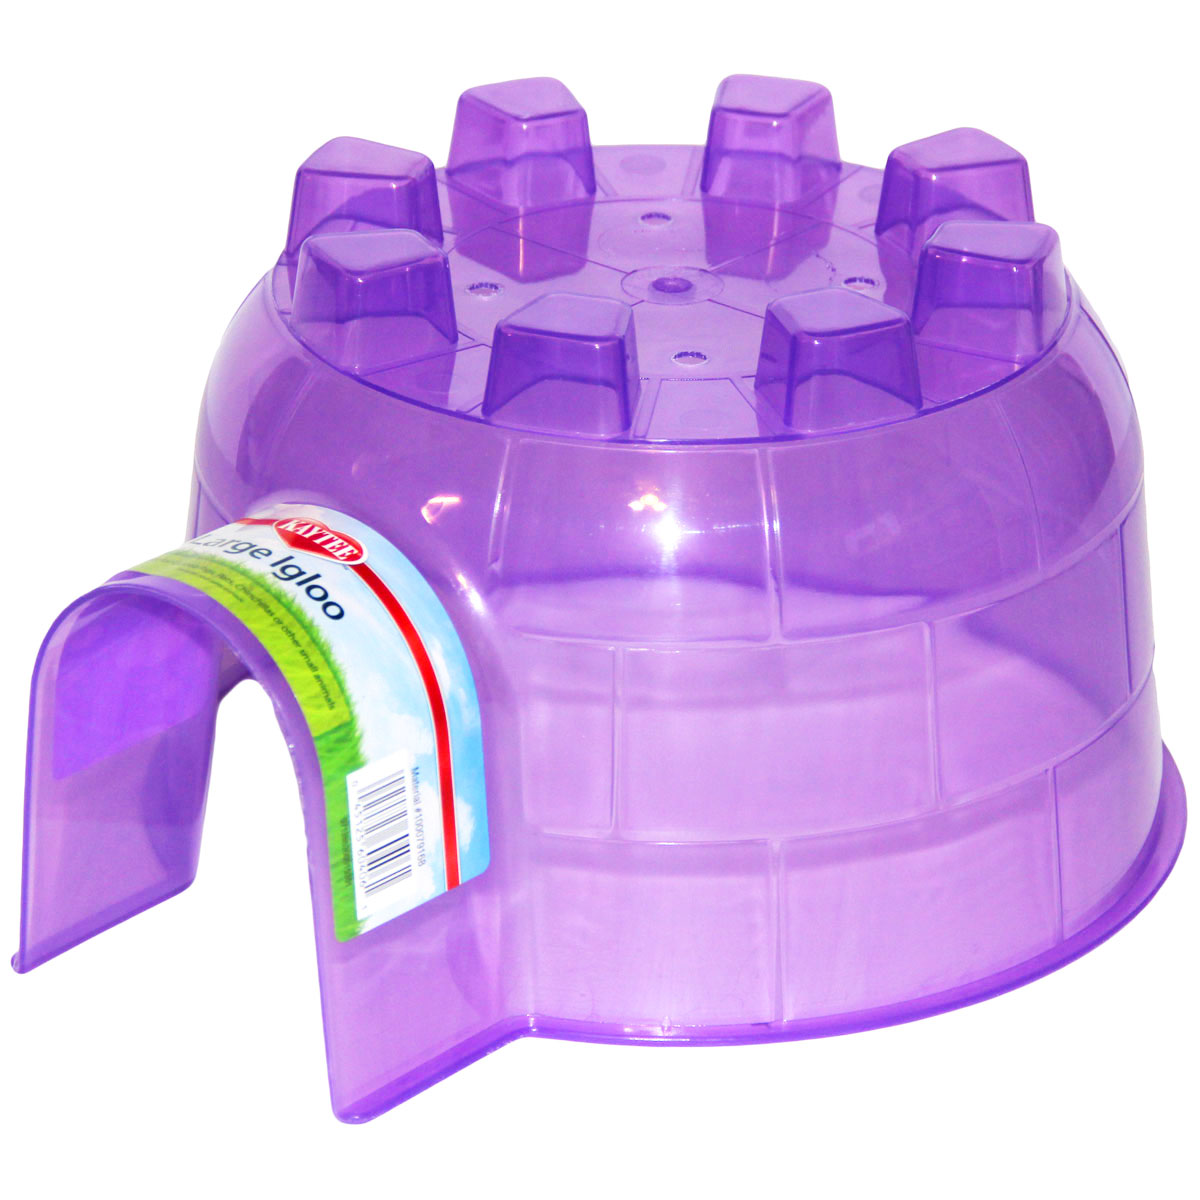 Plastic Pigloos Igloos For Guinea Pigs